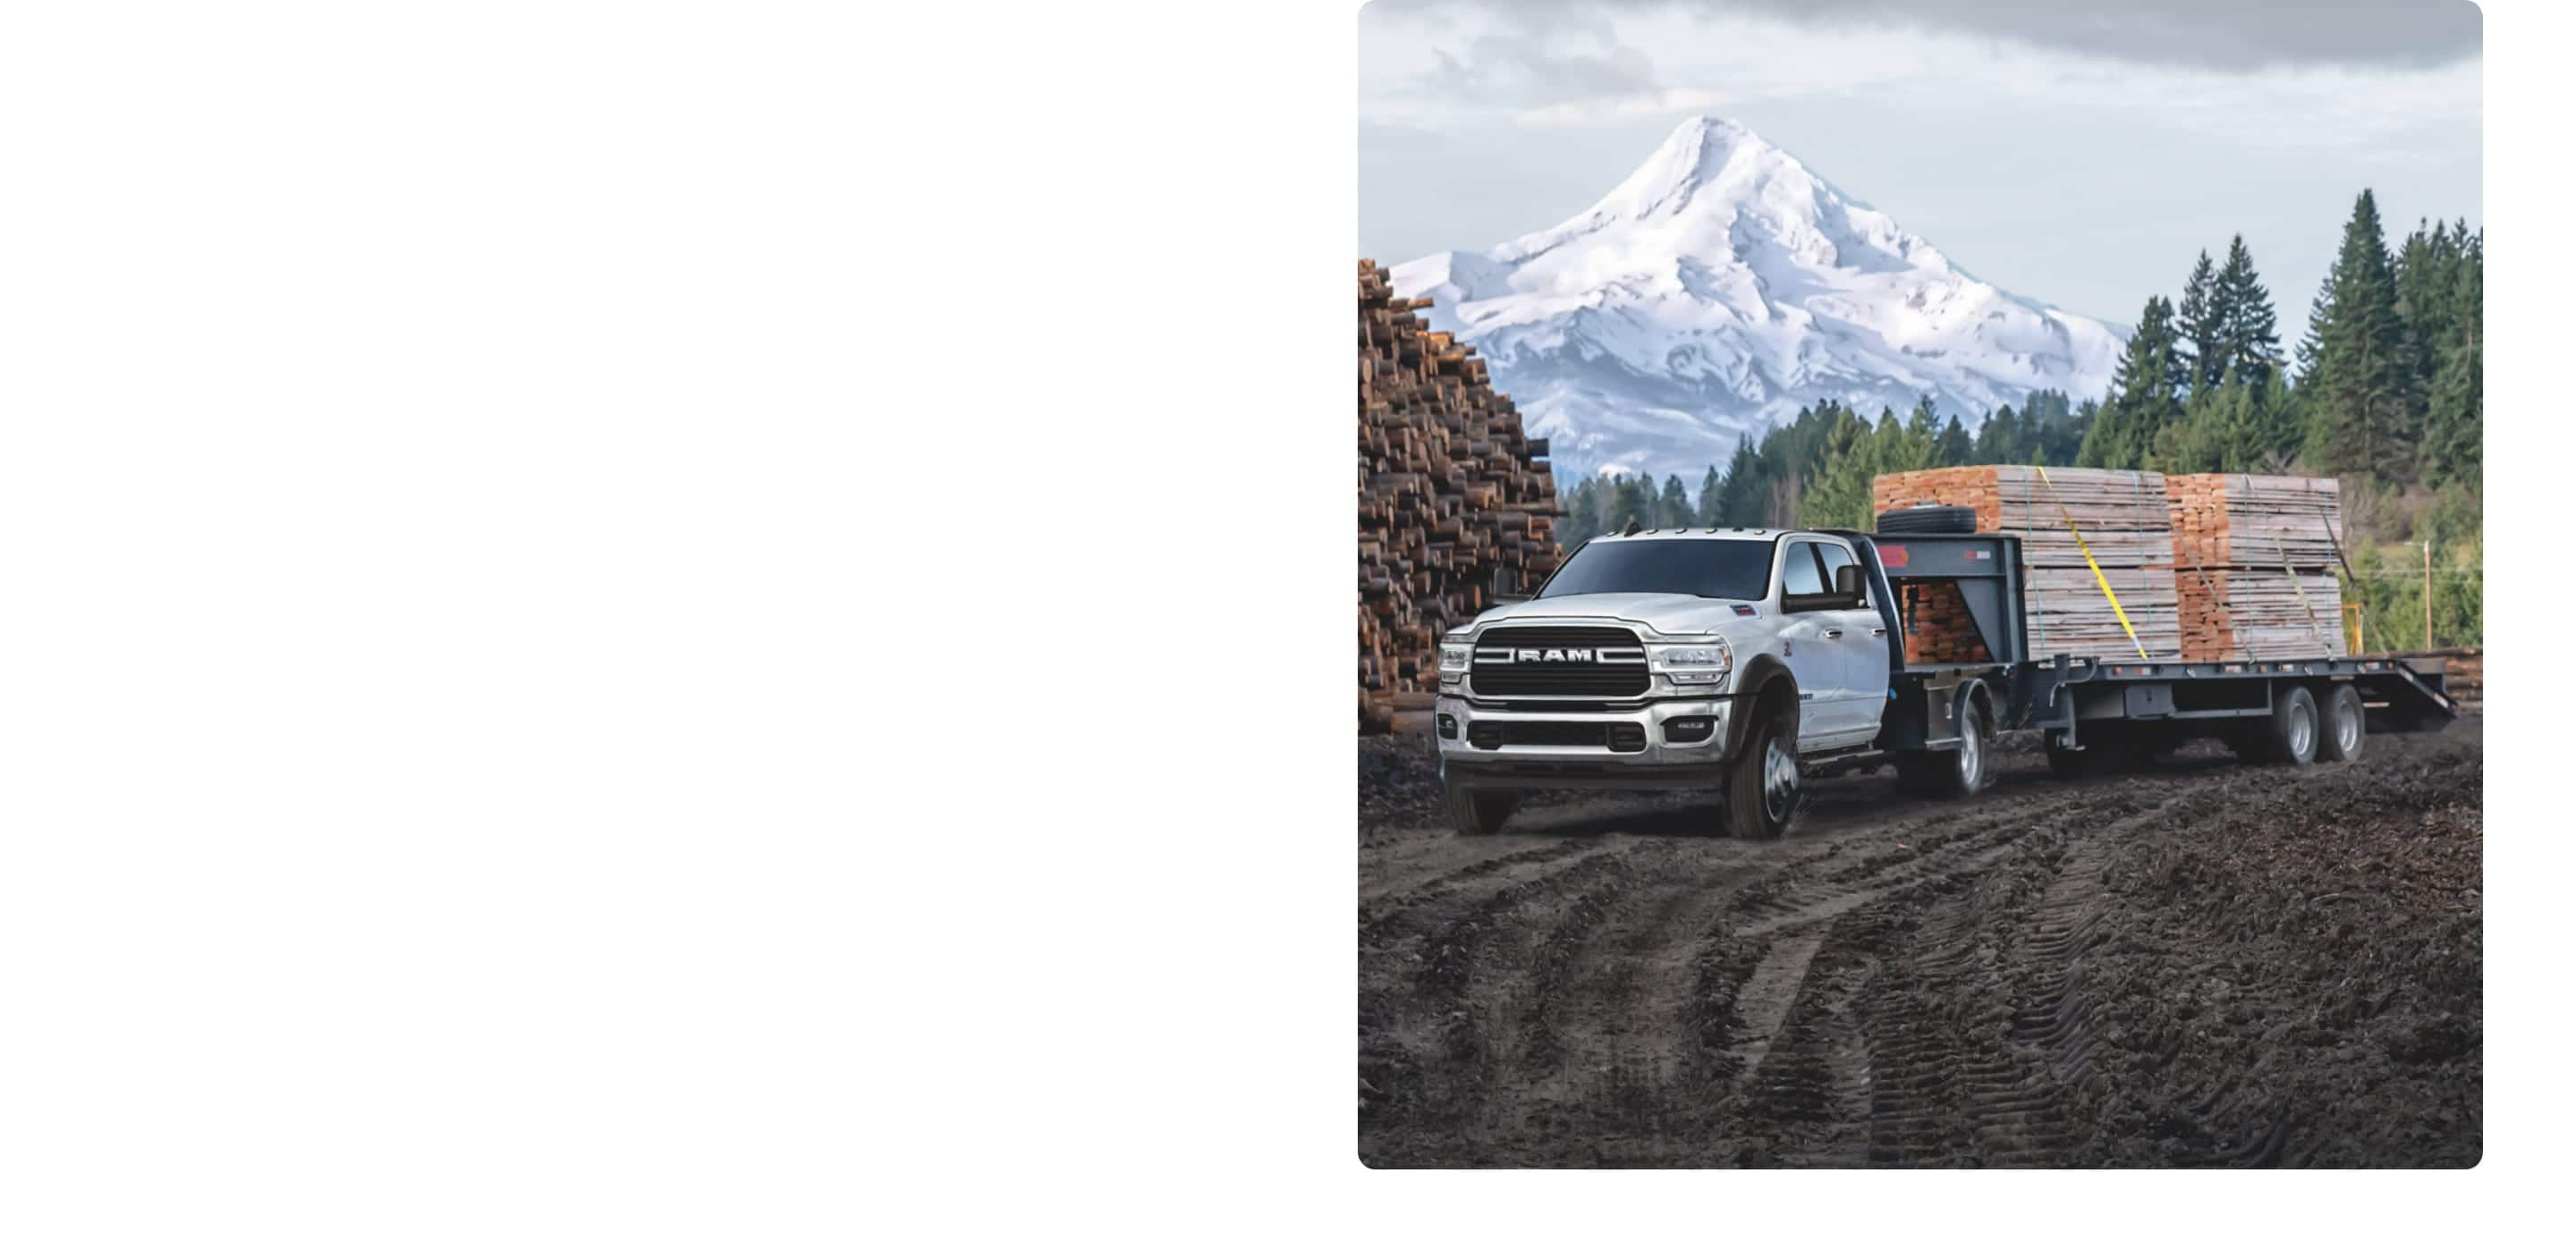 The 2020 Ram Chassis Cab carrying lumber as it traverses a dirt track.